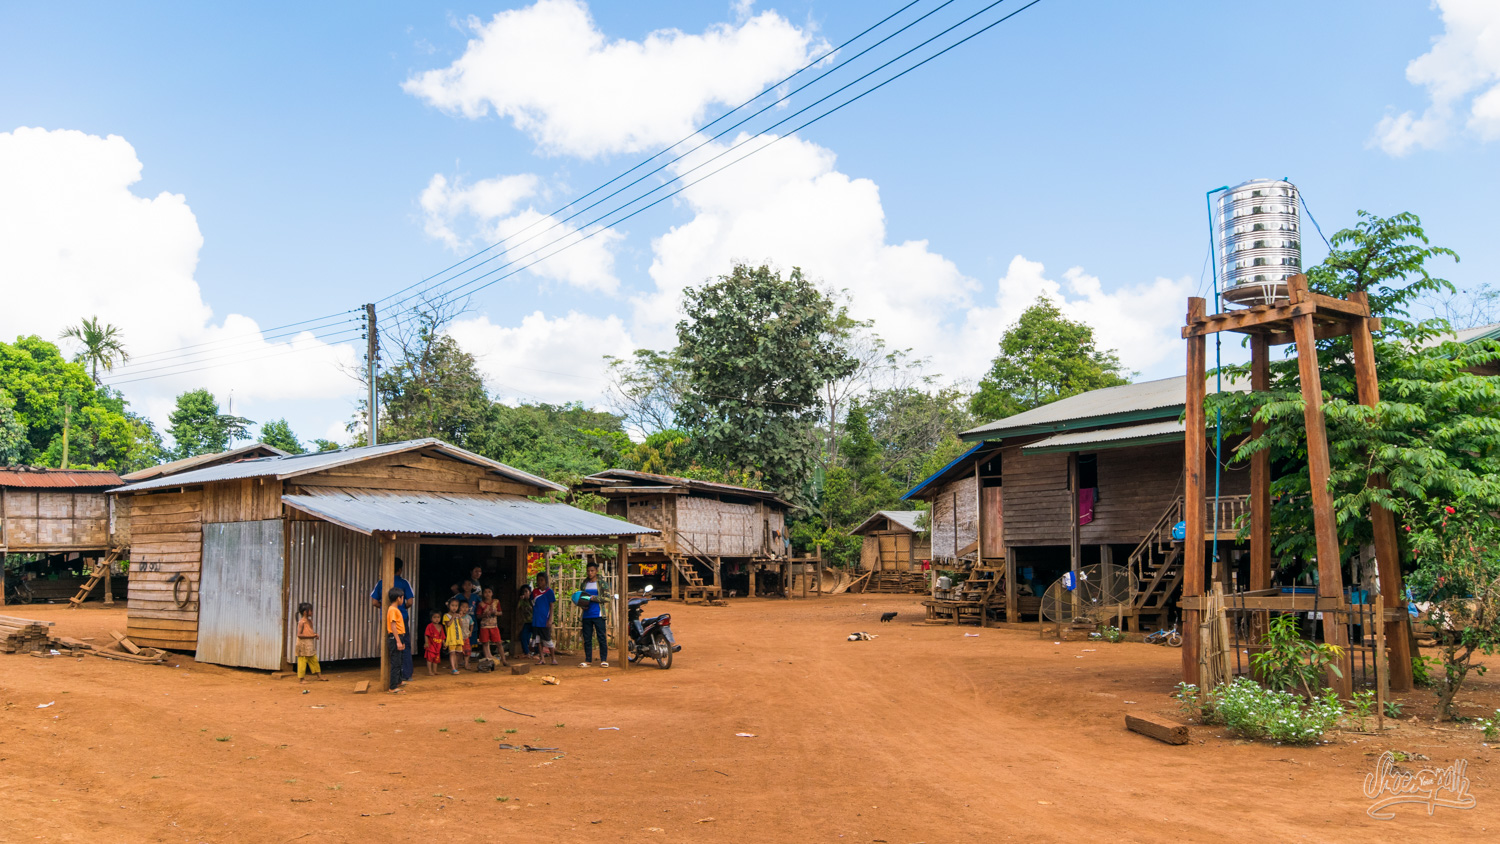 A little village on the Bolaven plateau